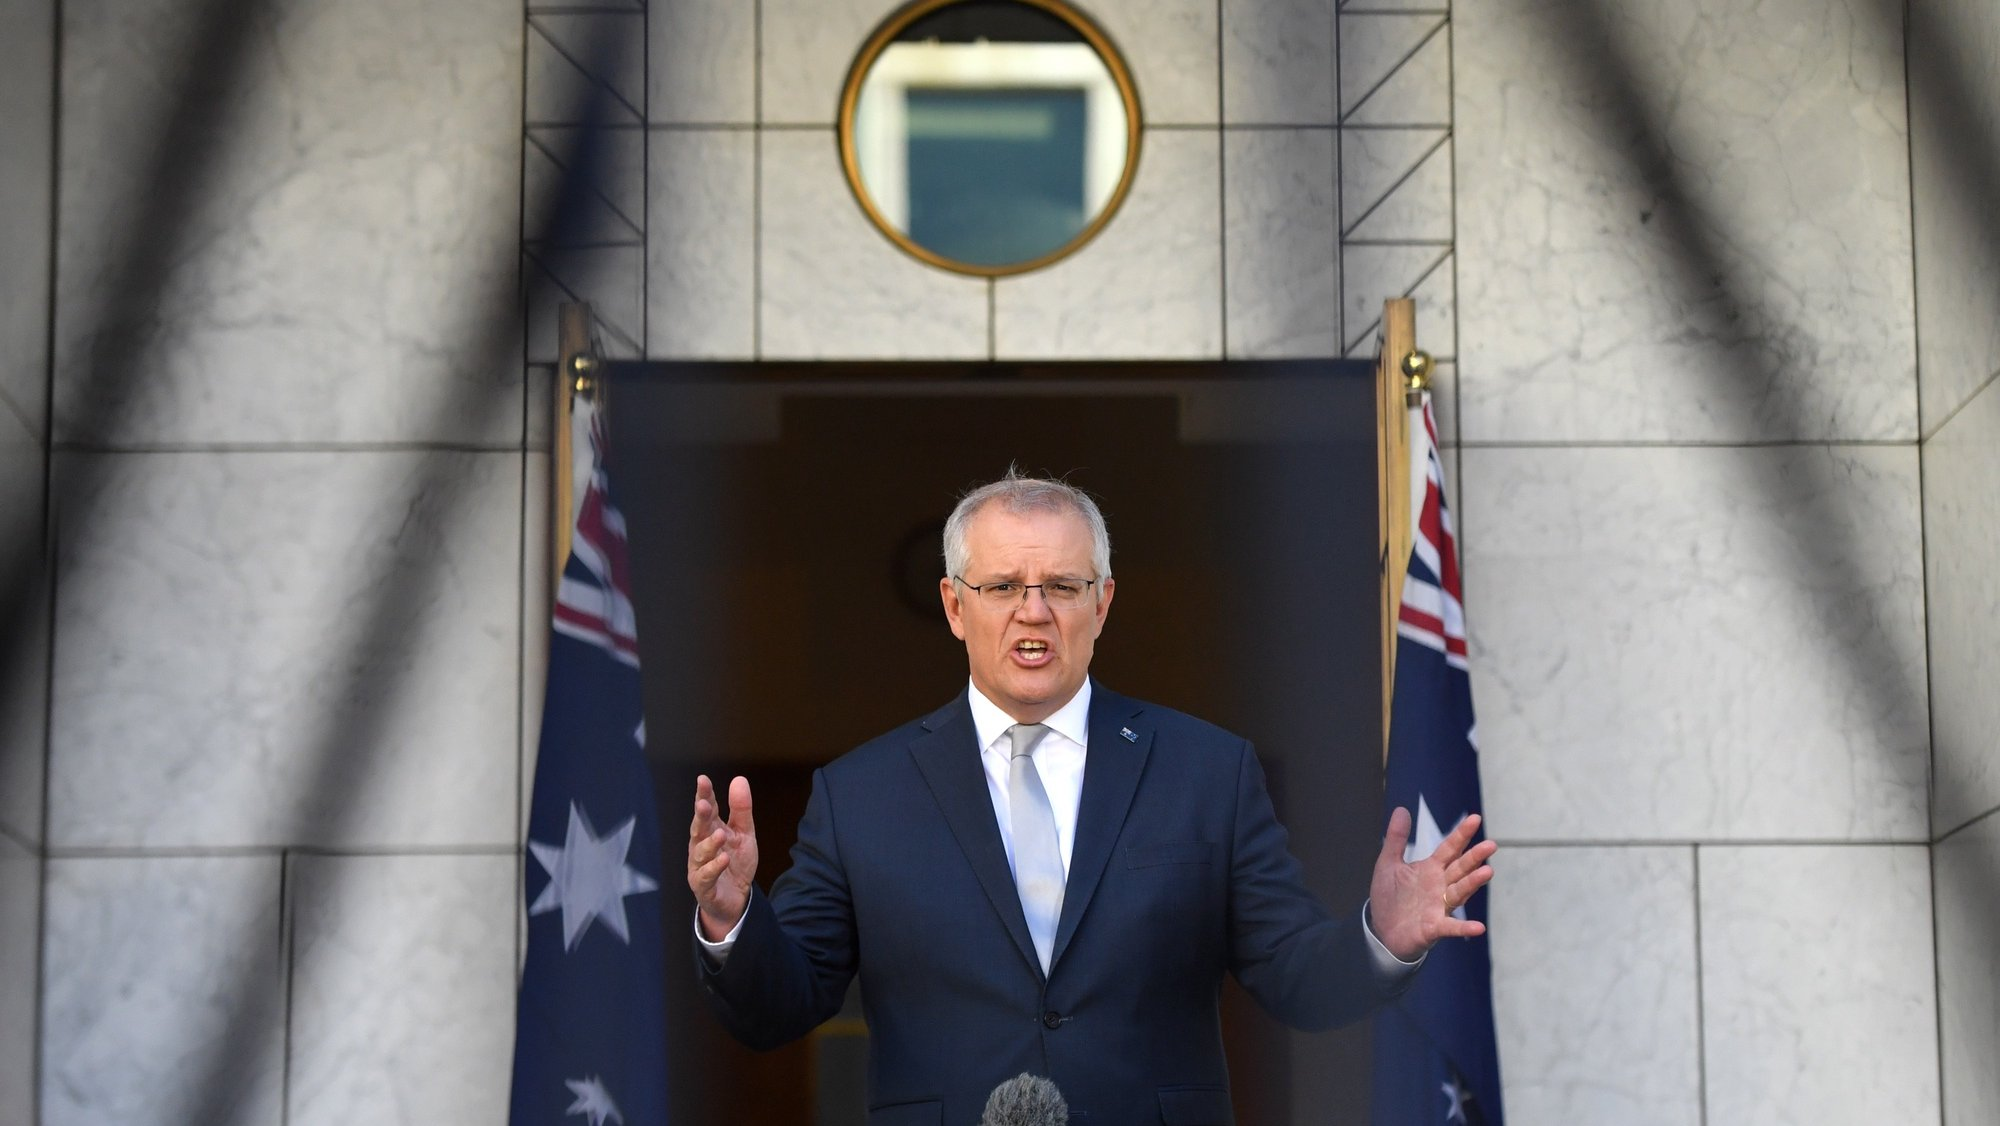 epaselect epa09535399 Australian Prime Minister Scott Morrison speaks during a morning television interview in his courtyard at Parliament House in Canberra, Australian Capital Territory, Australia, 21 October 2021.  EPA/MICK TSIKAS AUSTRALIA AND NEW ZEALAND OUT